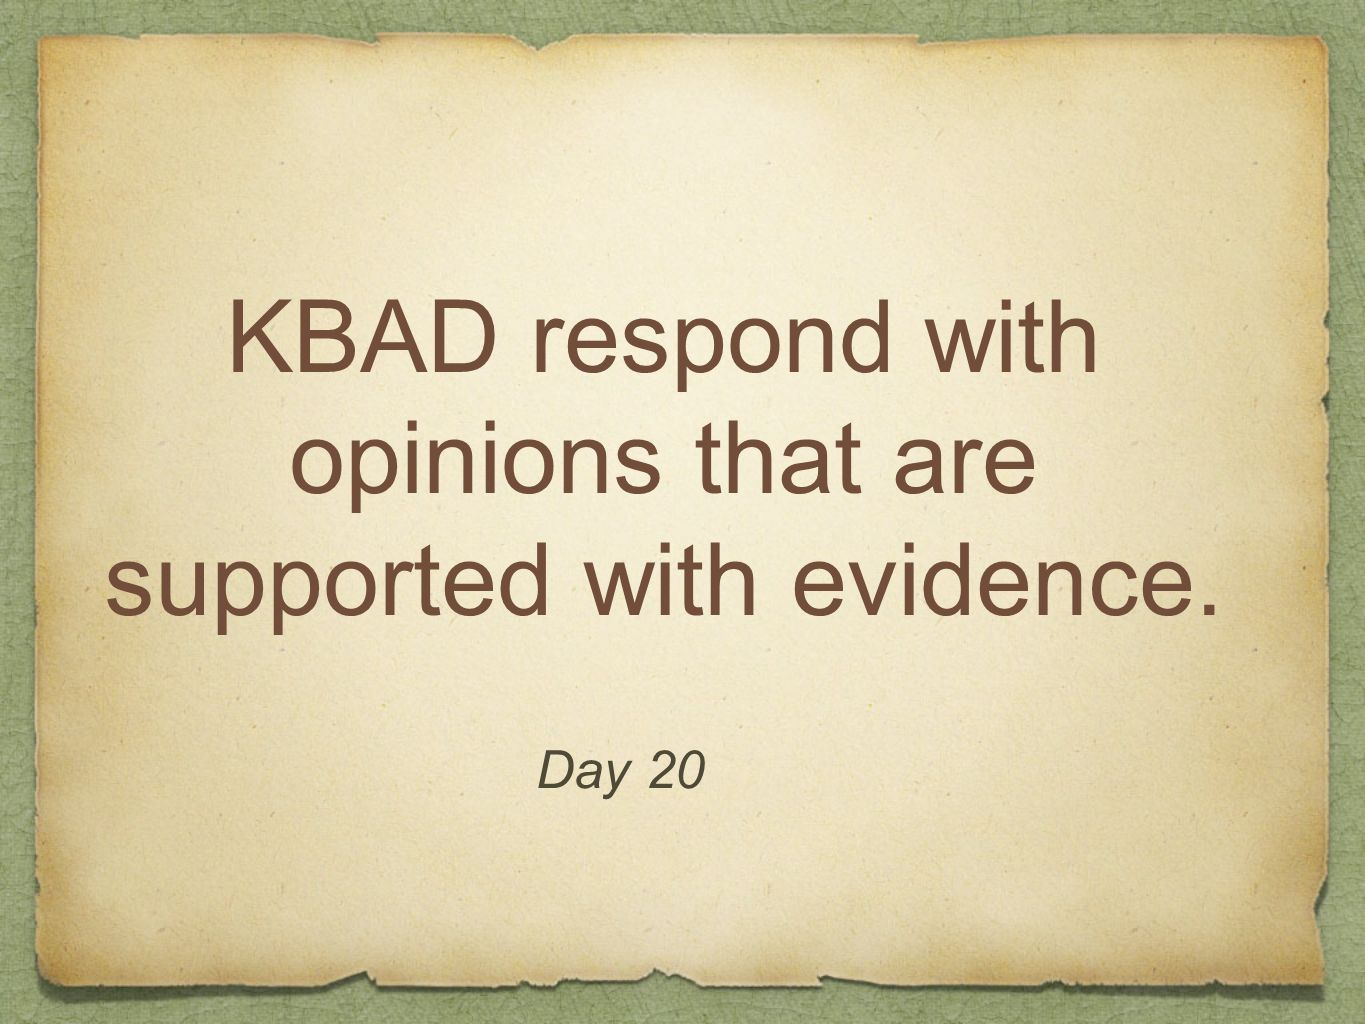 KBAD respond with opinions that are supported with evidence. Day 20